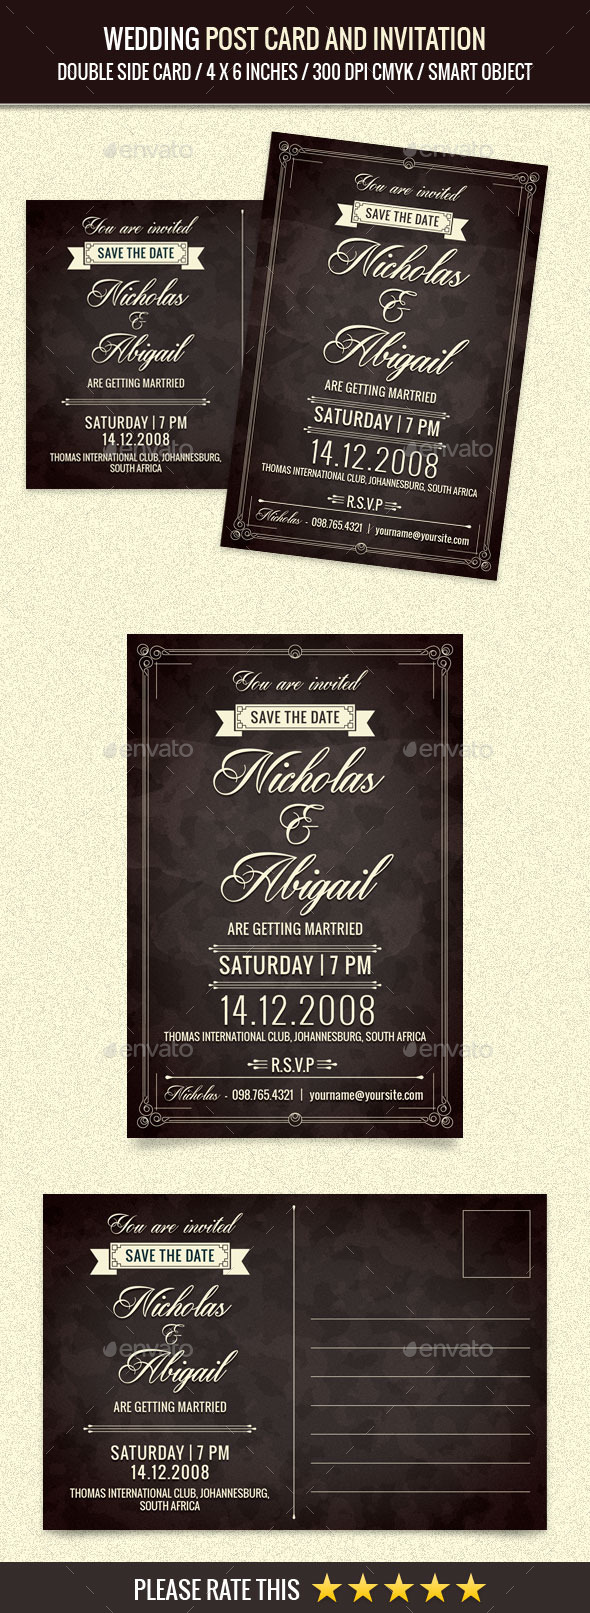 Wedding Invitation Post Card Template - Cards & Invites Print Templates